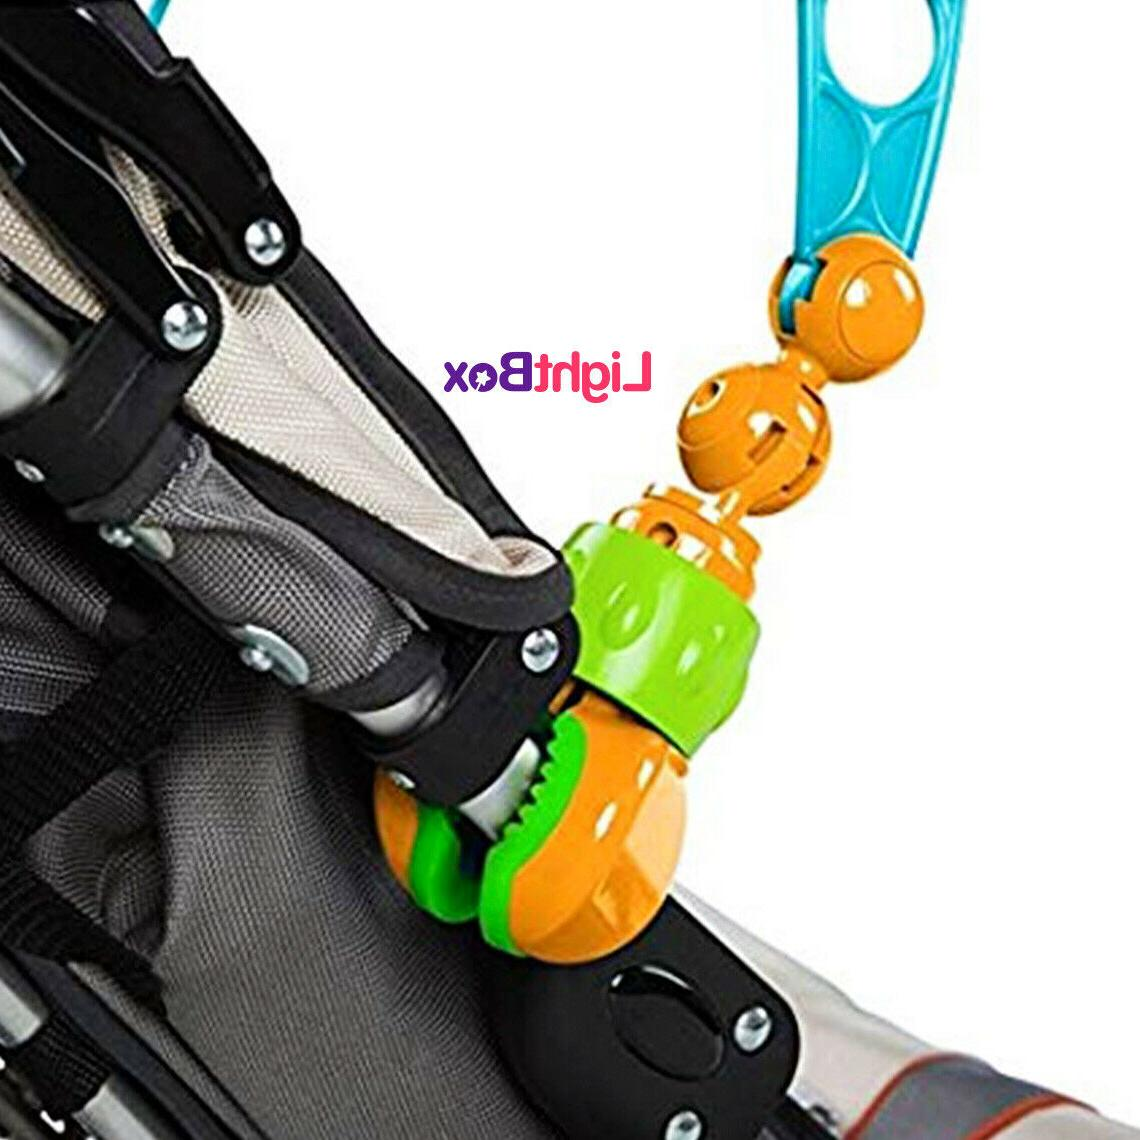 Toy Baby Stroller Crib Activity Educational Travel for Play